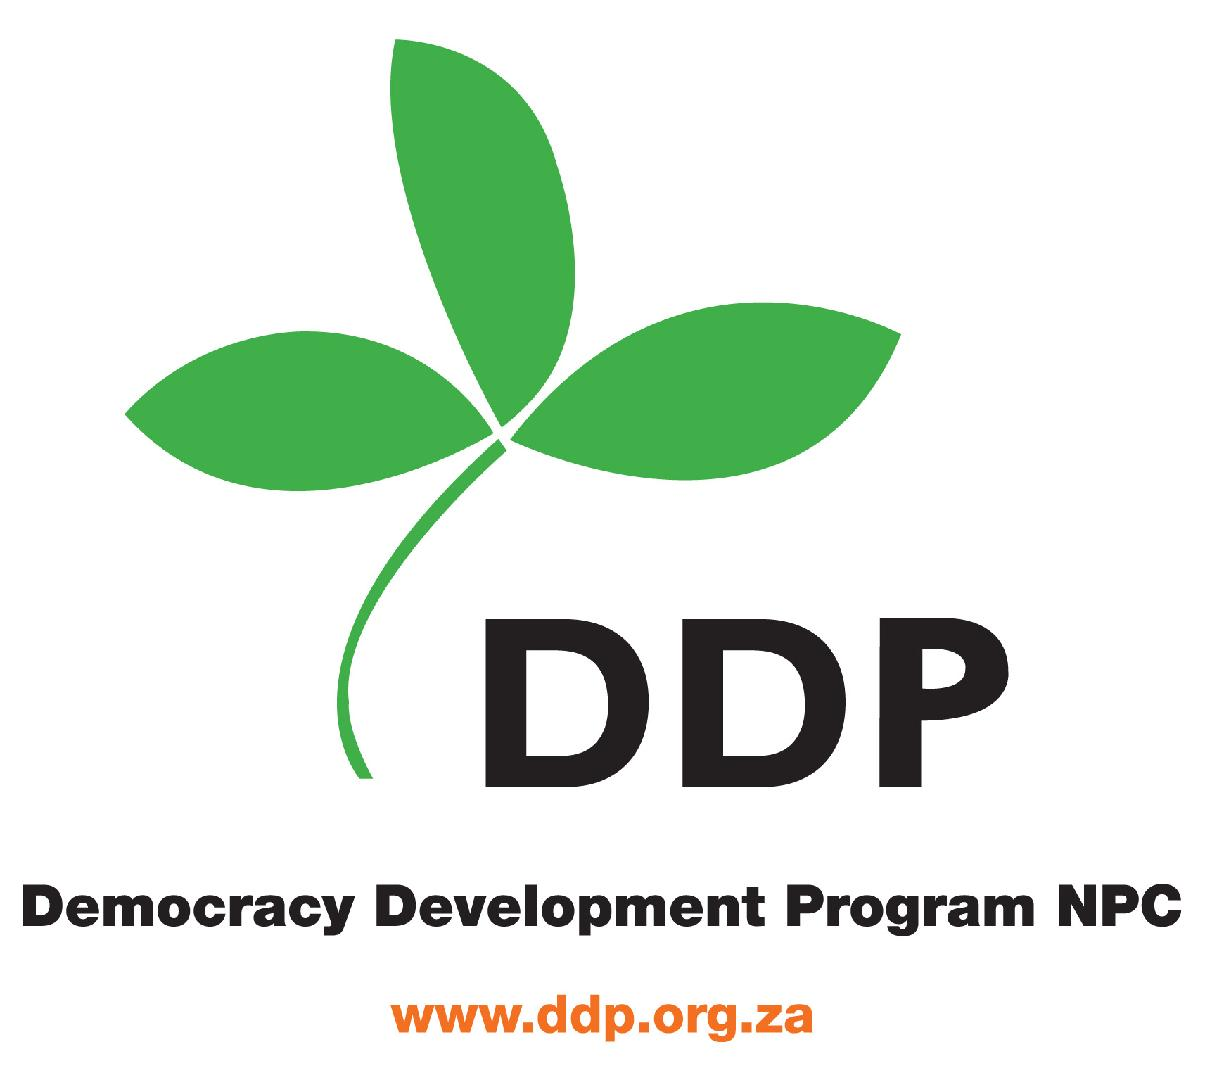 Democracy Development Program (DDP)